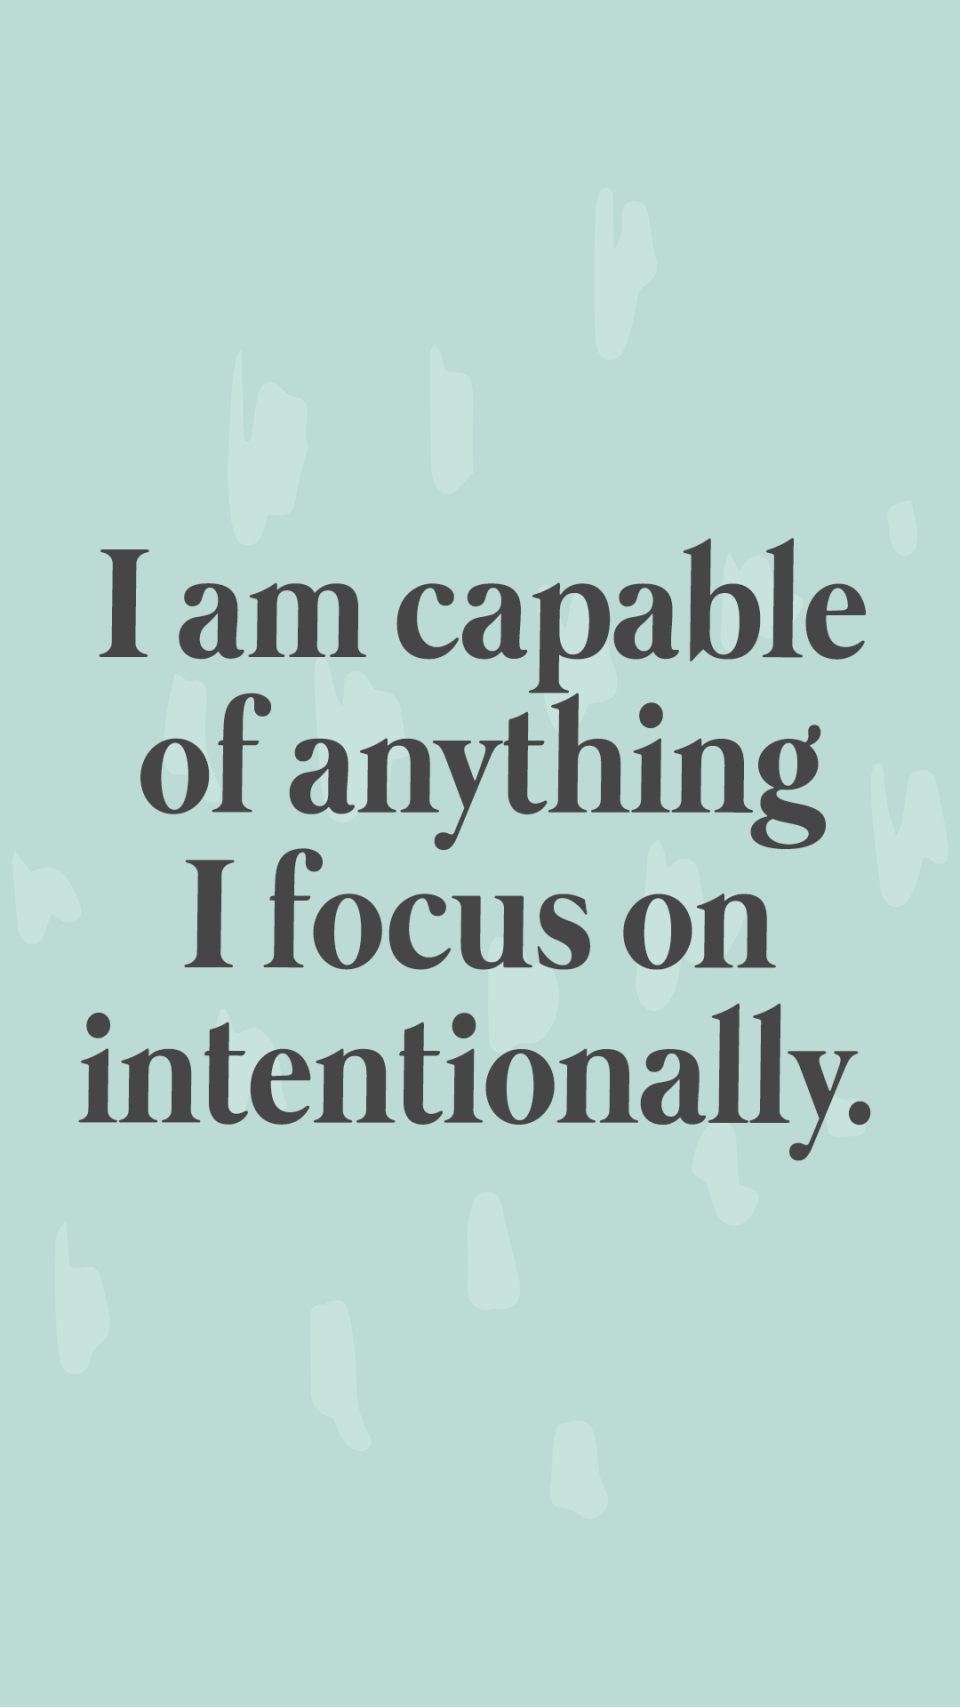 """I am capable of anything I focus on intentionally."" Affirmations Lock Screen and Journal Prompts"